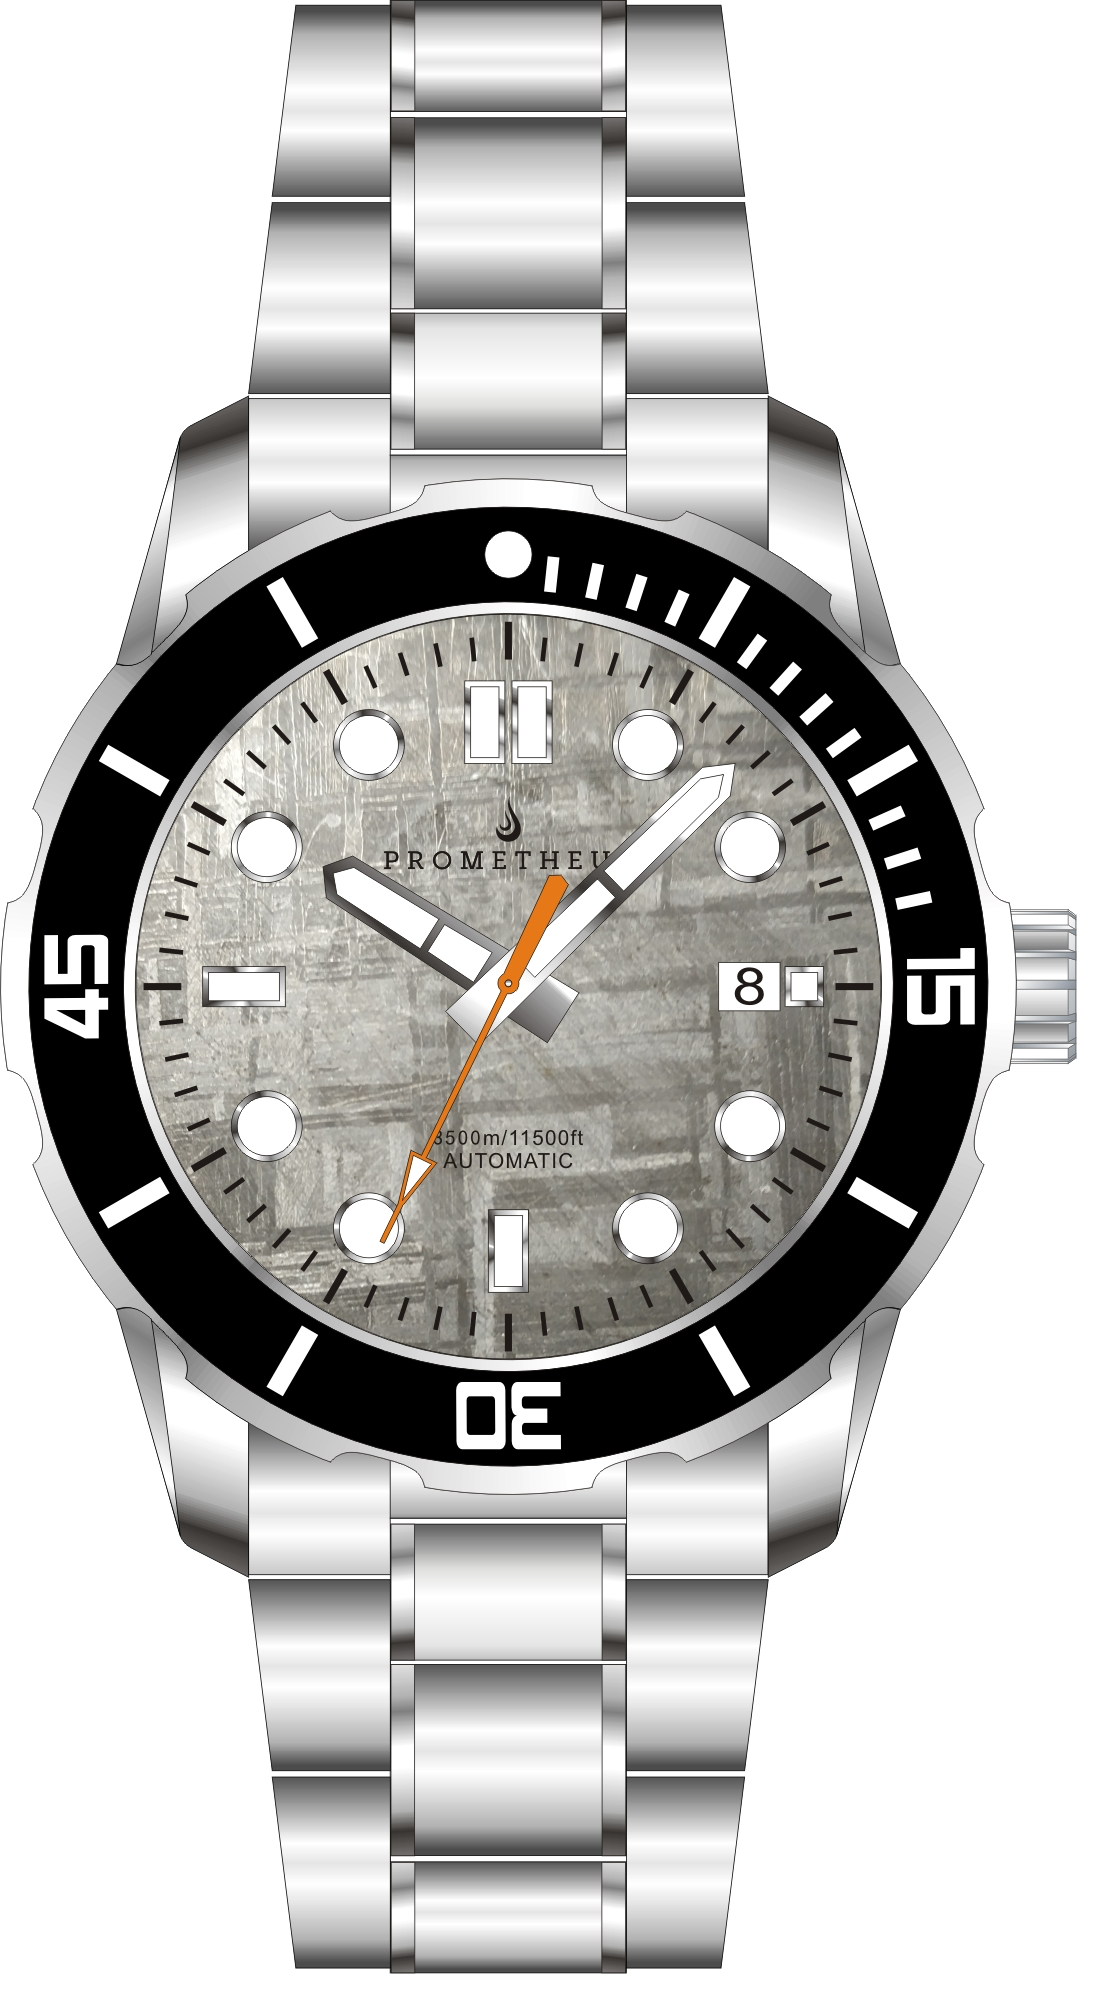 Prometheus Poseidon Meteorite Dial Pencil Hands Orange Seconds Date 3500m Diver Watch Automatic Miyota 9015 PMTPMETEORPHODT